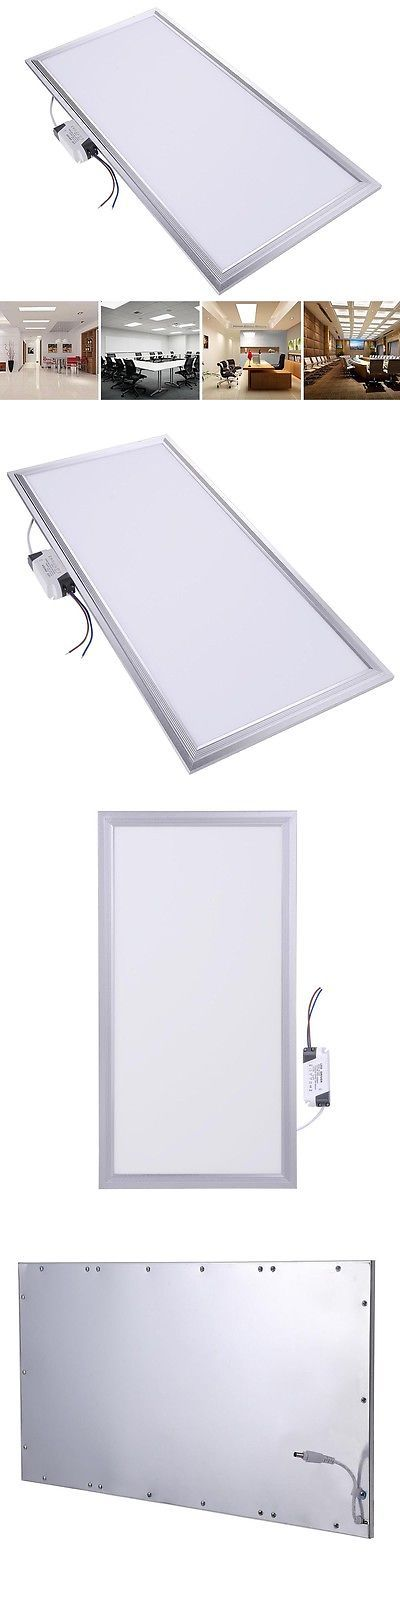 Lamps And Lighting: 24W Led Recessed Ceiling Light Square Smd Panel Down Light Bulb Cool White Home BUY IT NOW ONLY: $37.9